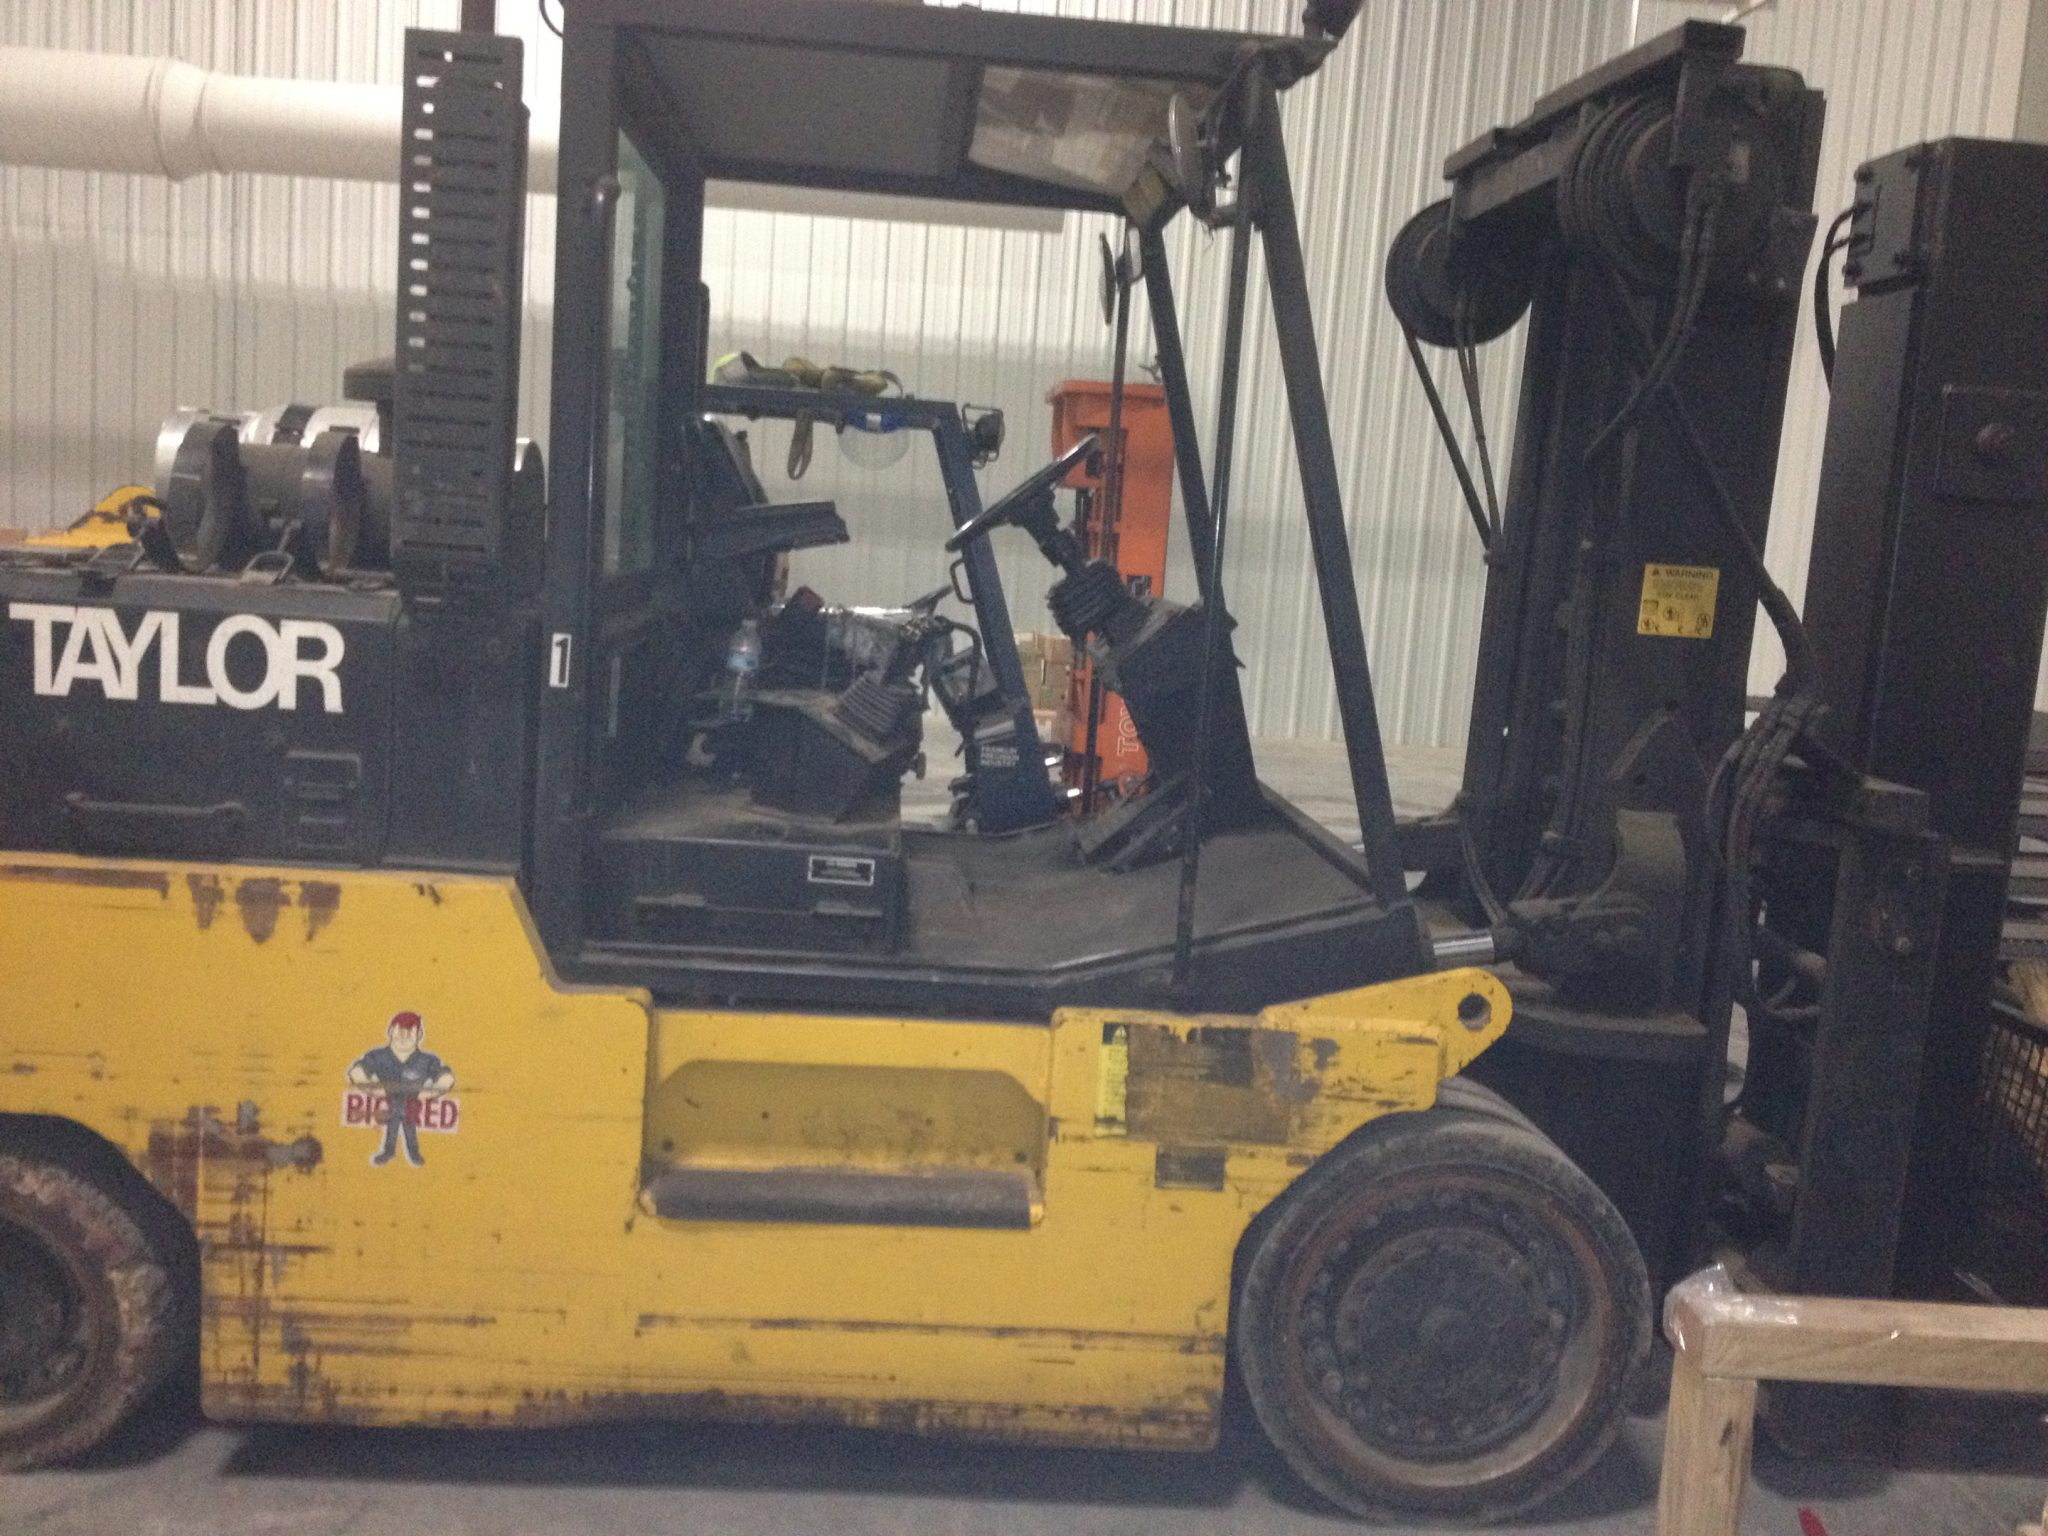 30 000lbs taylor t 300 forklift for sale call 616 200 rh affordable machinery com Big Red Fork Lift Taylor Big Red Fork Lift Taylor